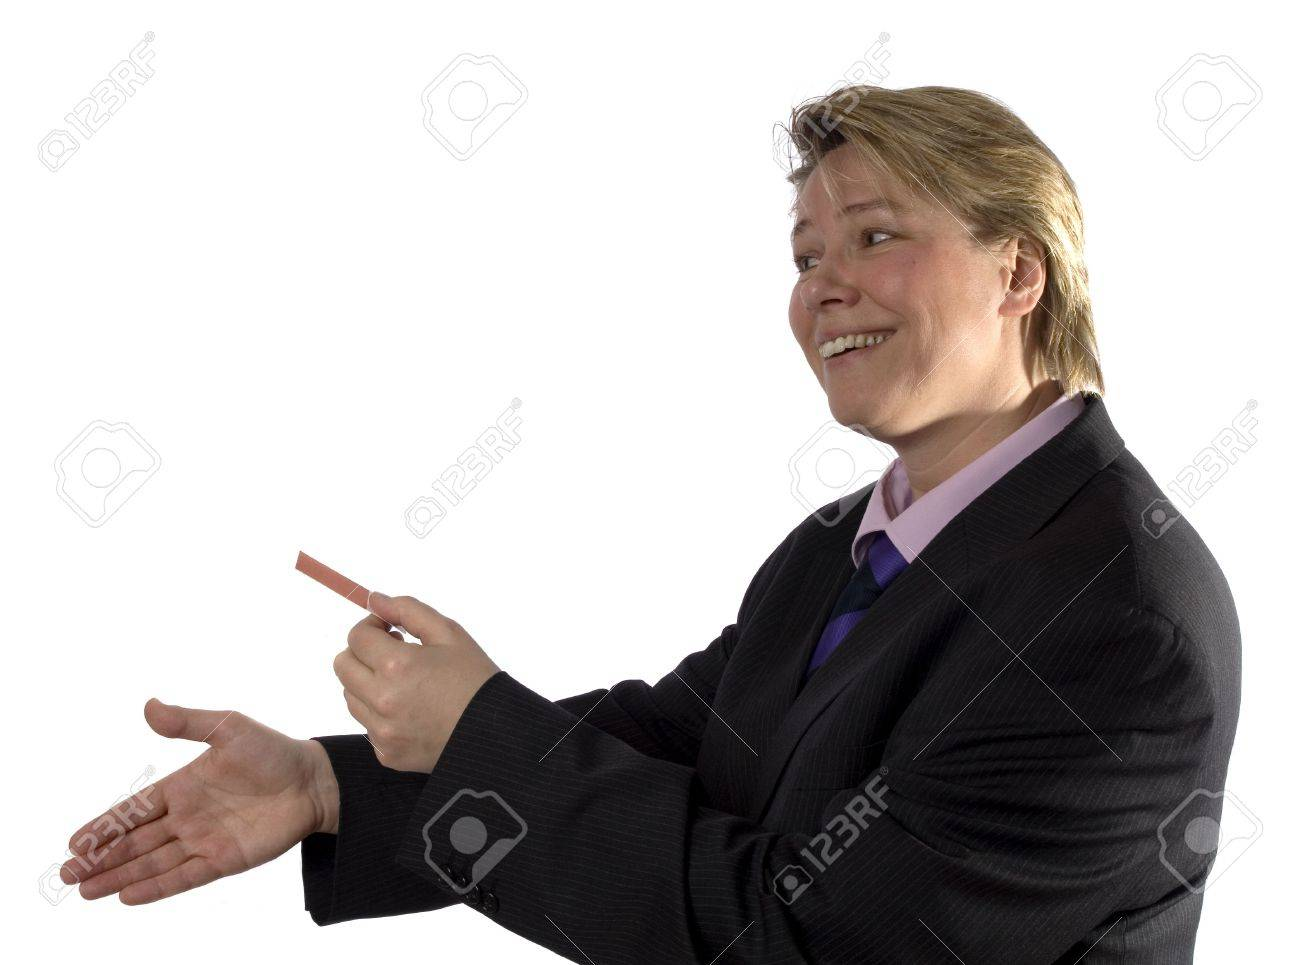 Businesswoman giving a blank business card and wants to shake hands. Stock Photo - 413453